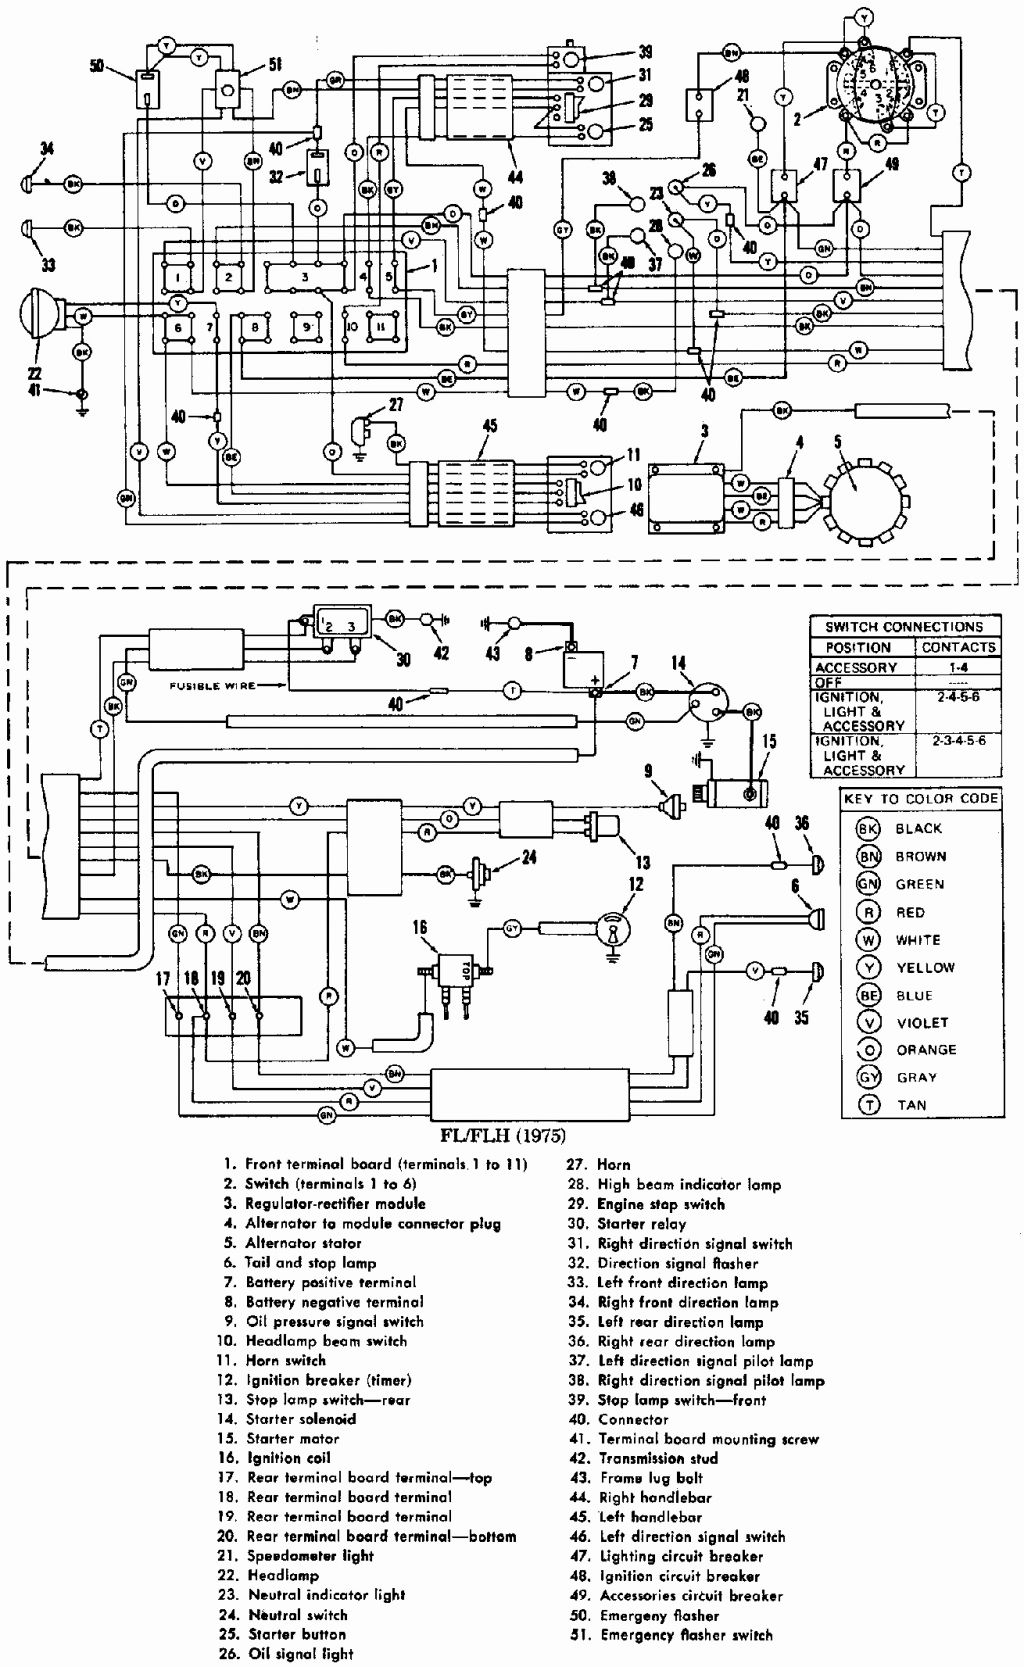 Harley Radio Wiring Diagram Free Download Schematic - Wiring